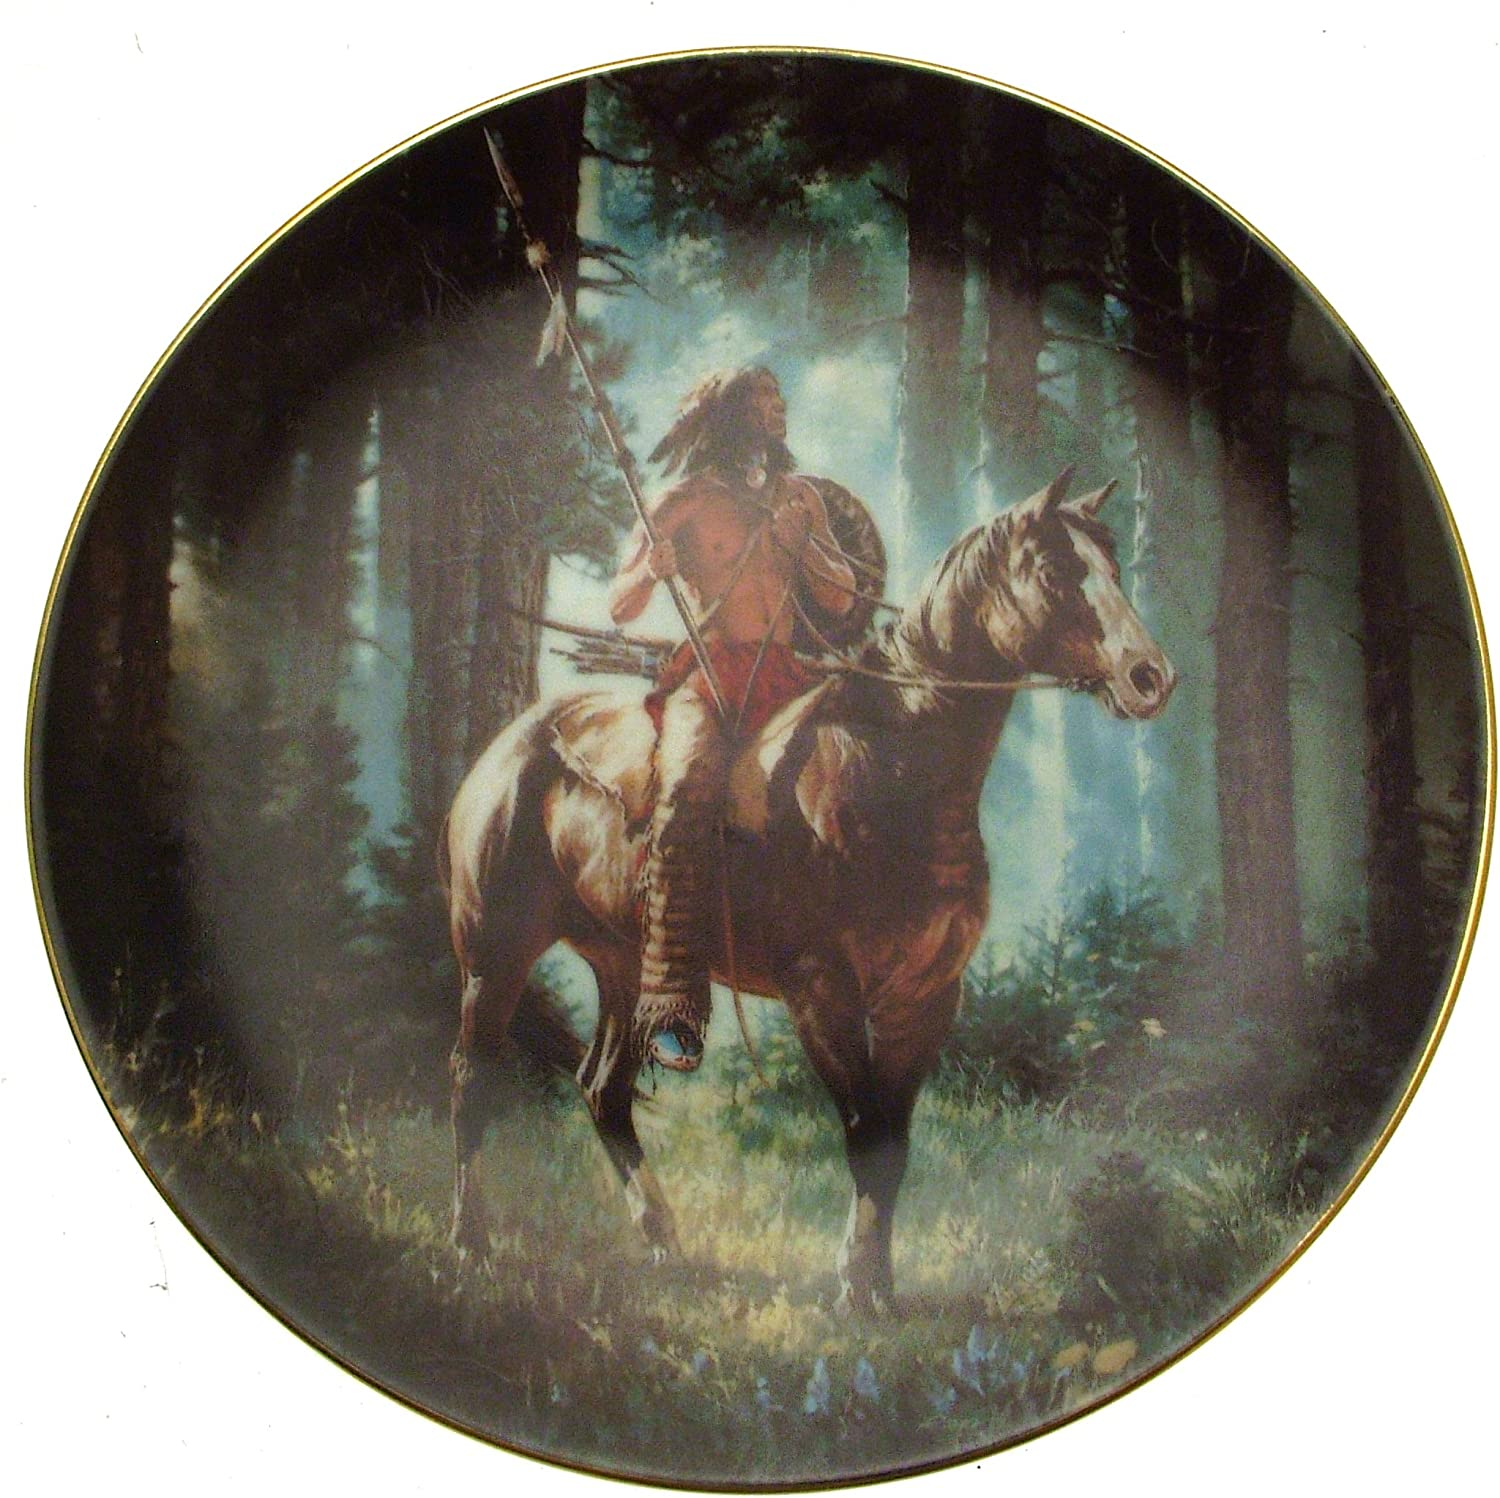 HAMILTON COLLECTION AMERICAN INDIAN MYSTIC WARRIERS DELIVERANCE PLATE